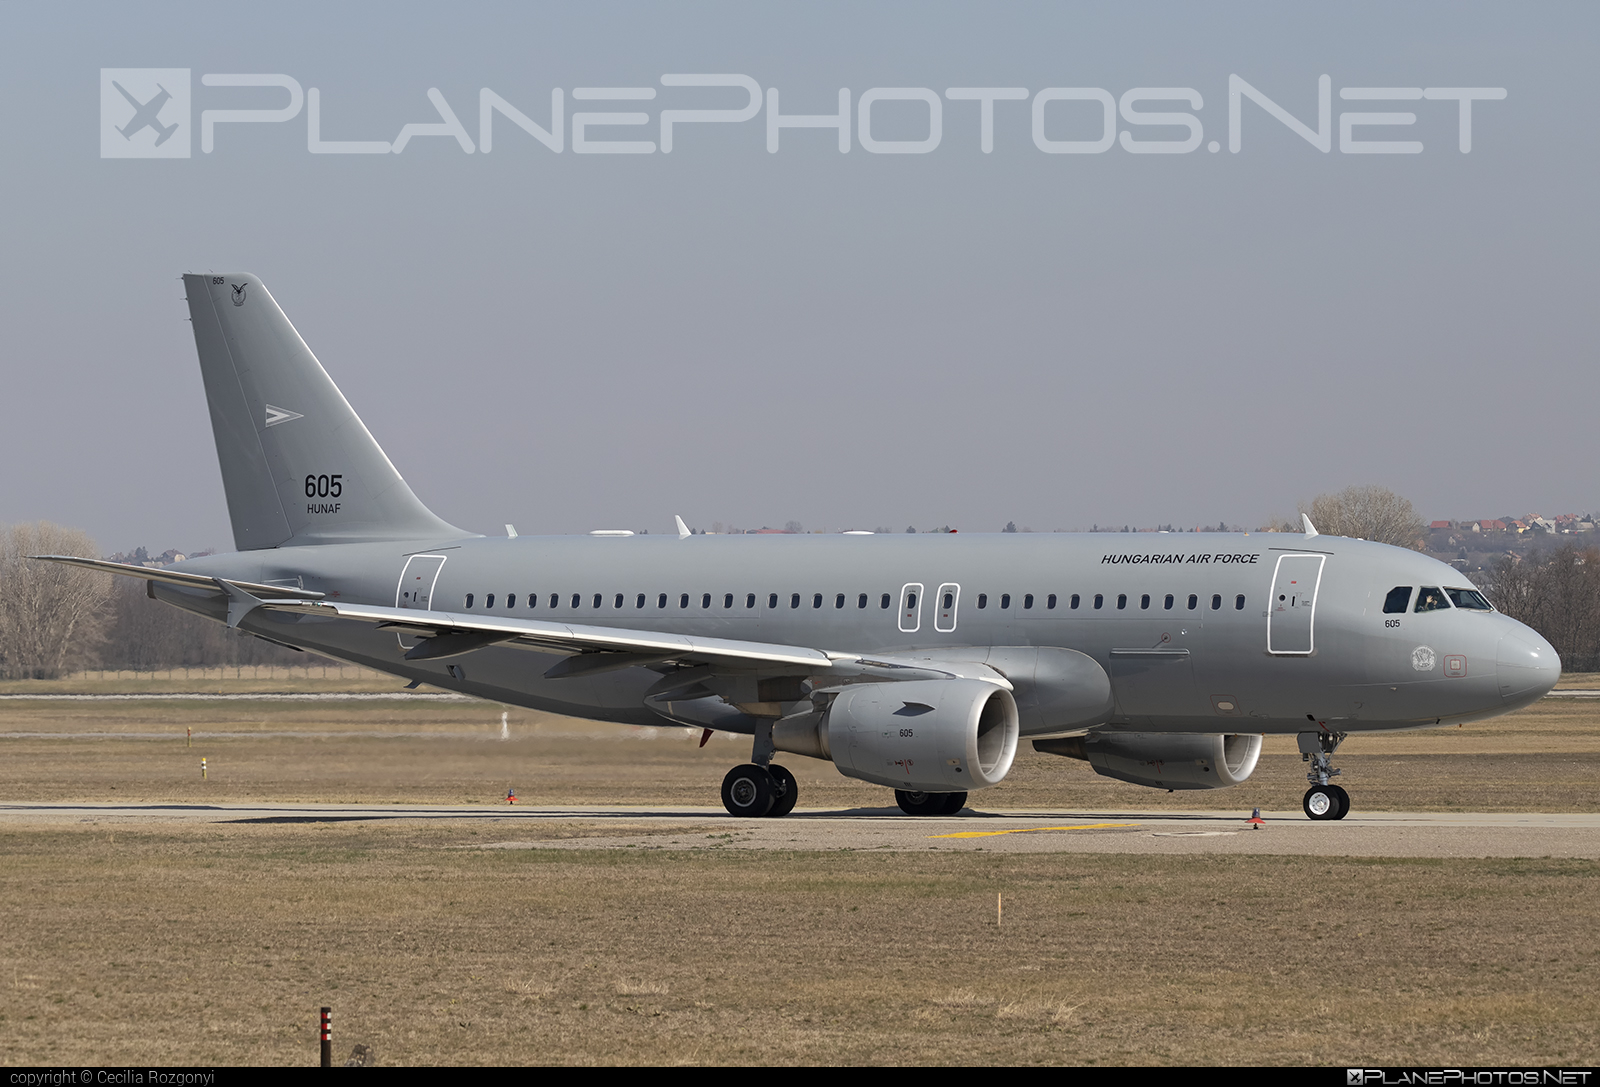 Airbus A319-112 - 605 operated by Magyar Légierő (Hungarian Air Force) #a319 #a320family #airbus #airbus319 #hungarianairforce #magyarlegiero